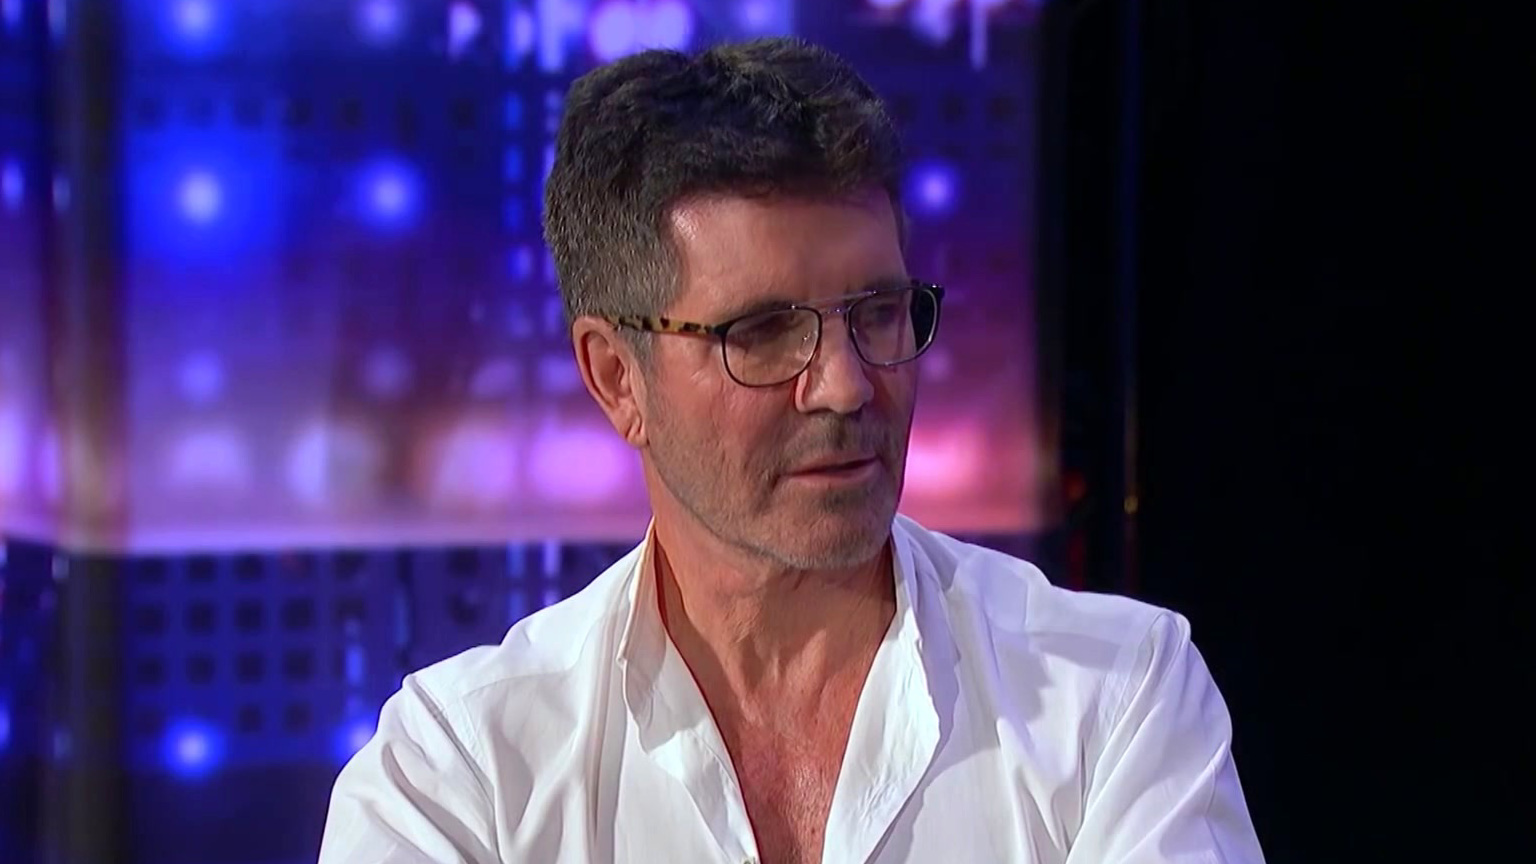 America's Got Talent: Simon Cowell Controls Howie Mandel's Mind